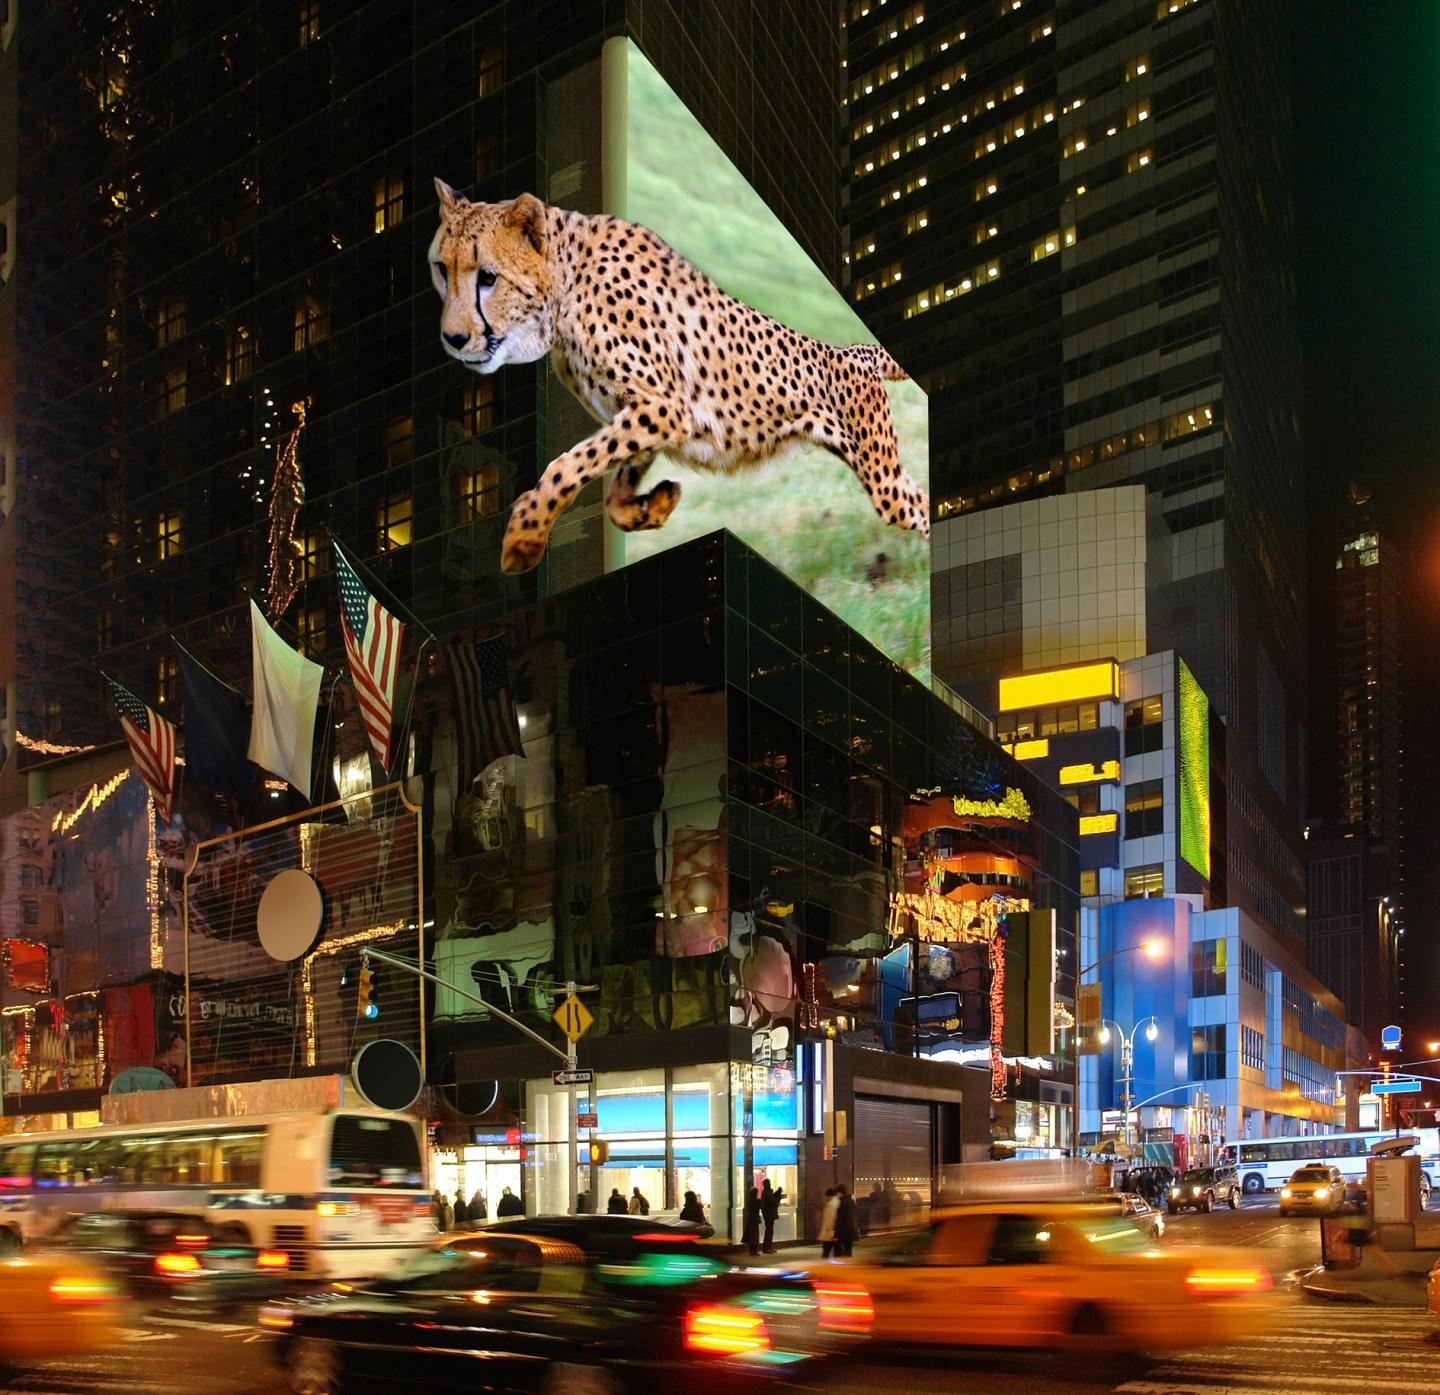 Giant Billboards In 3-D, No Glasses Needed